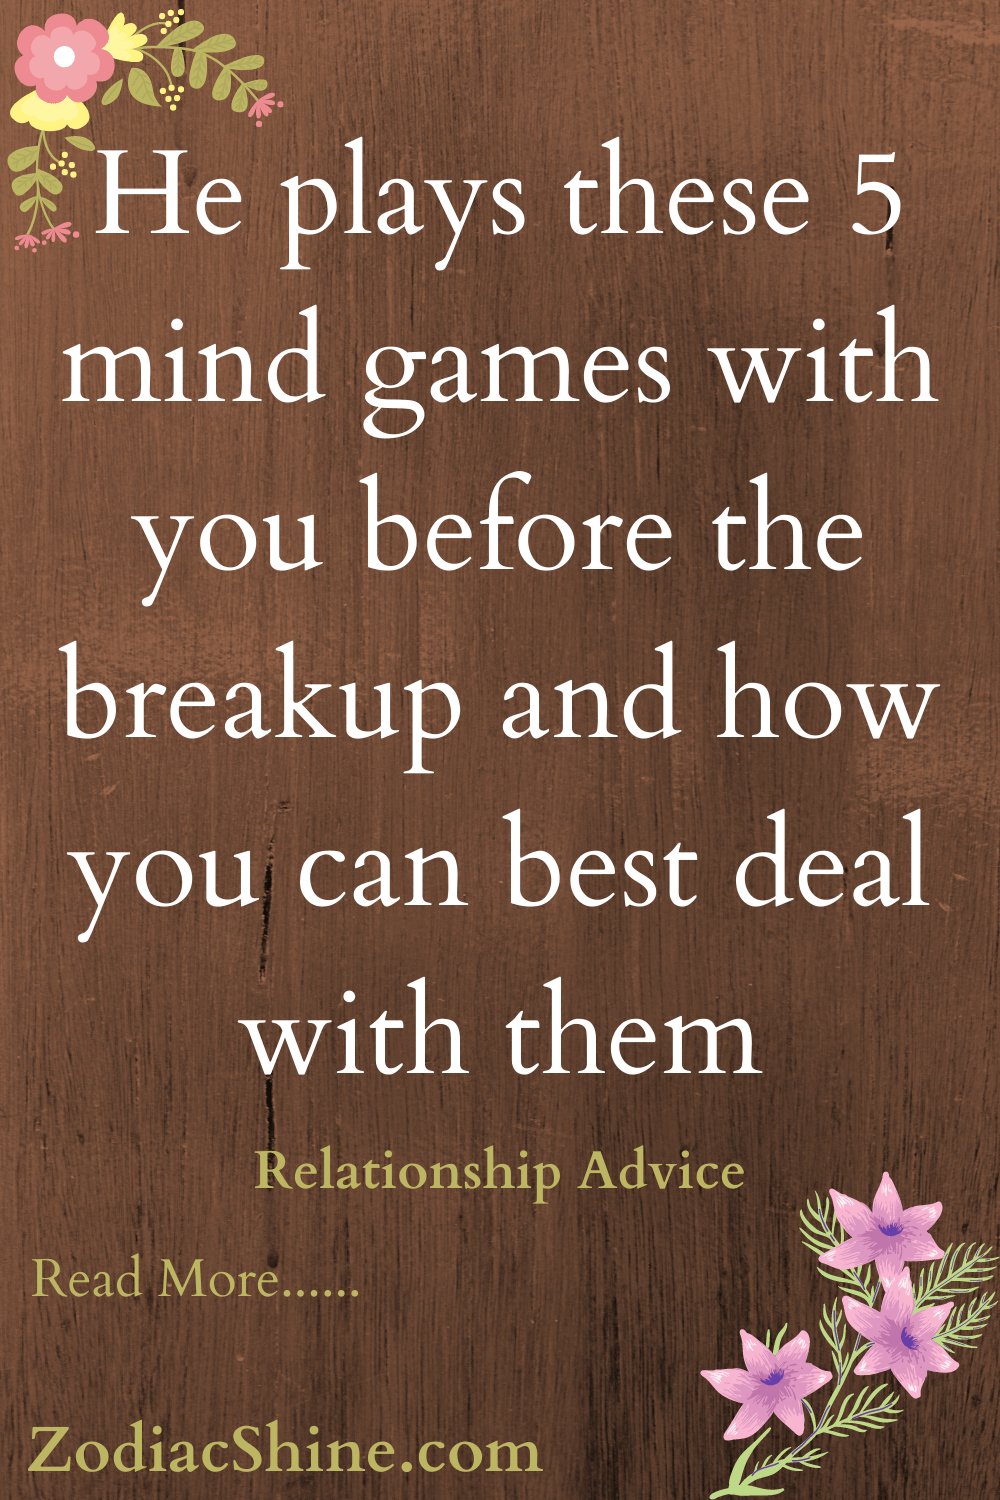 He plays these 5 mind games with you before the breakup and how you can best deal with them